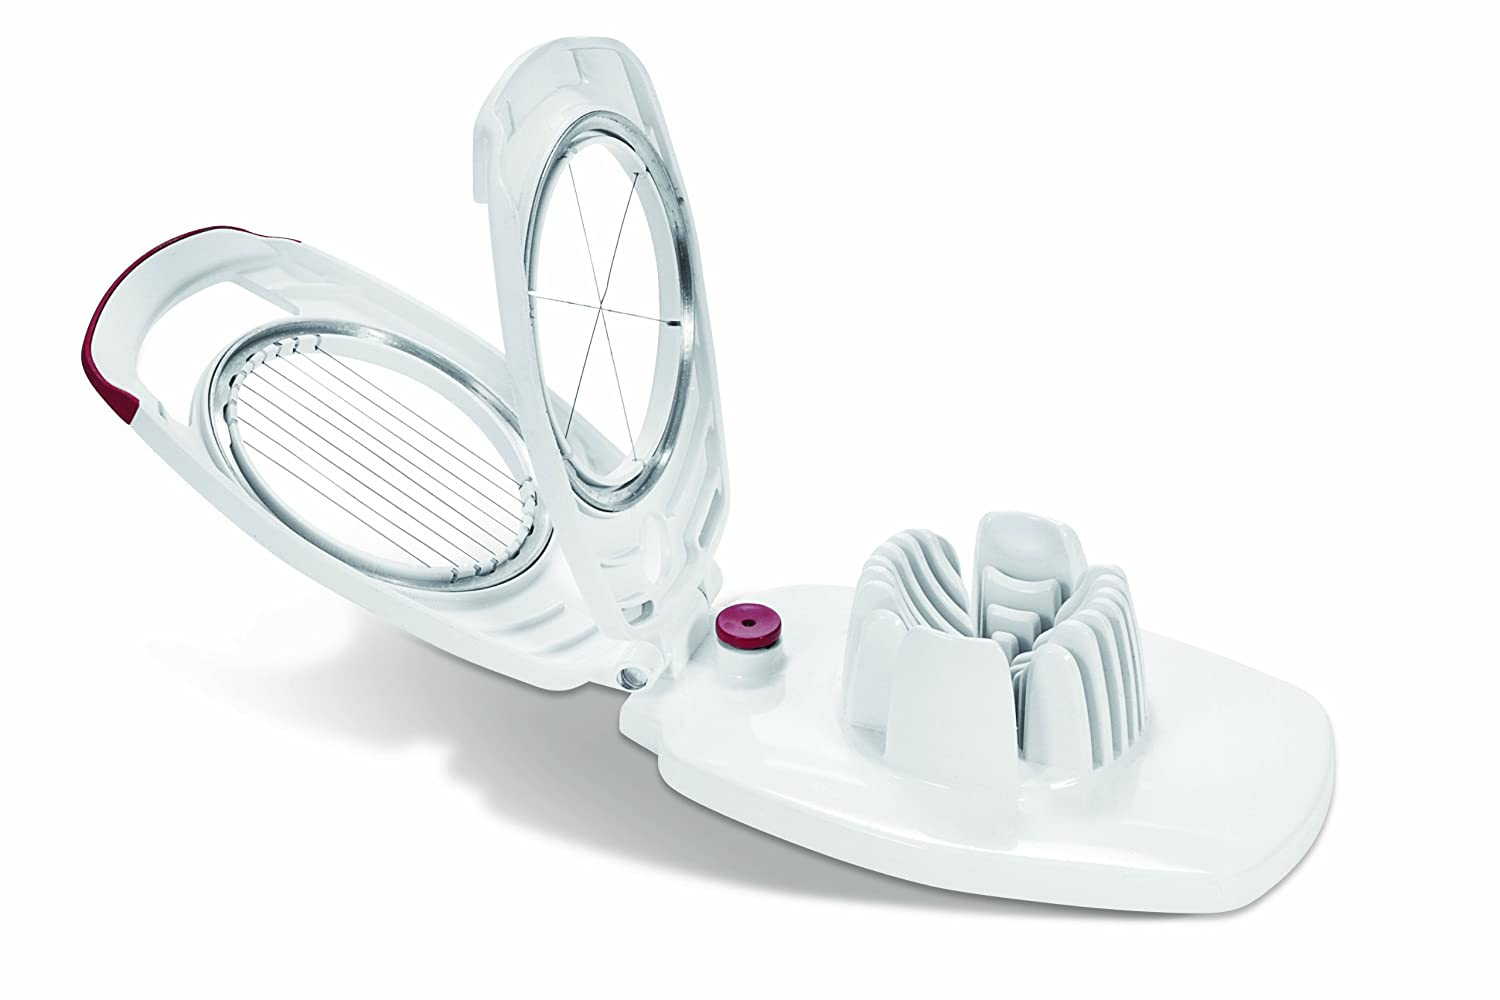 Zyliss Egg Slicer - Non Slip, Egg Cutter and Wedger with Built in Shell Piercer by Zyliss 11970